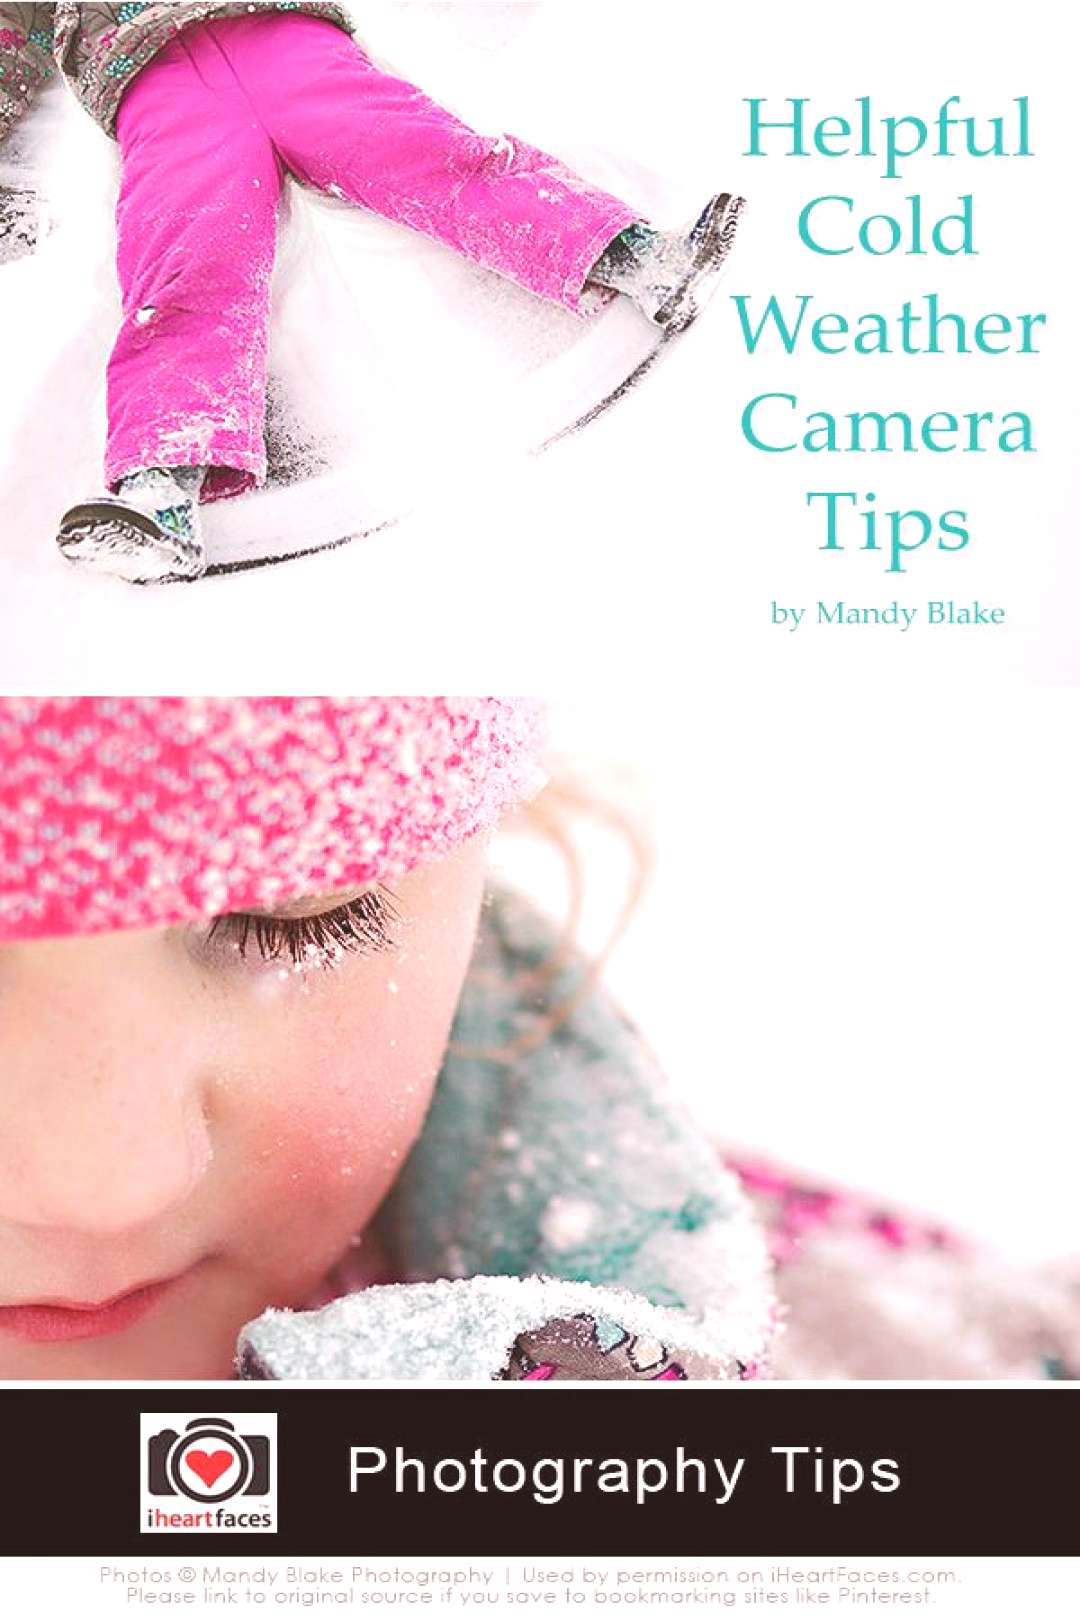 Helpful Camera Tips for Cold Weather —